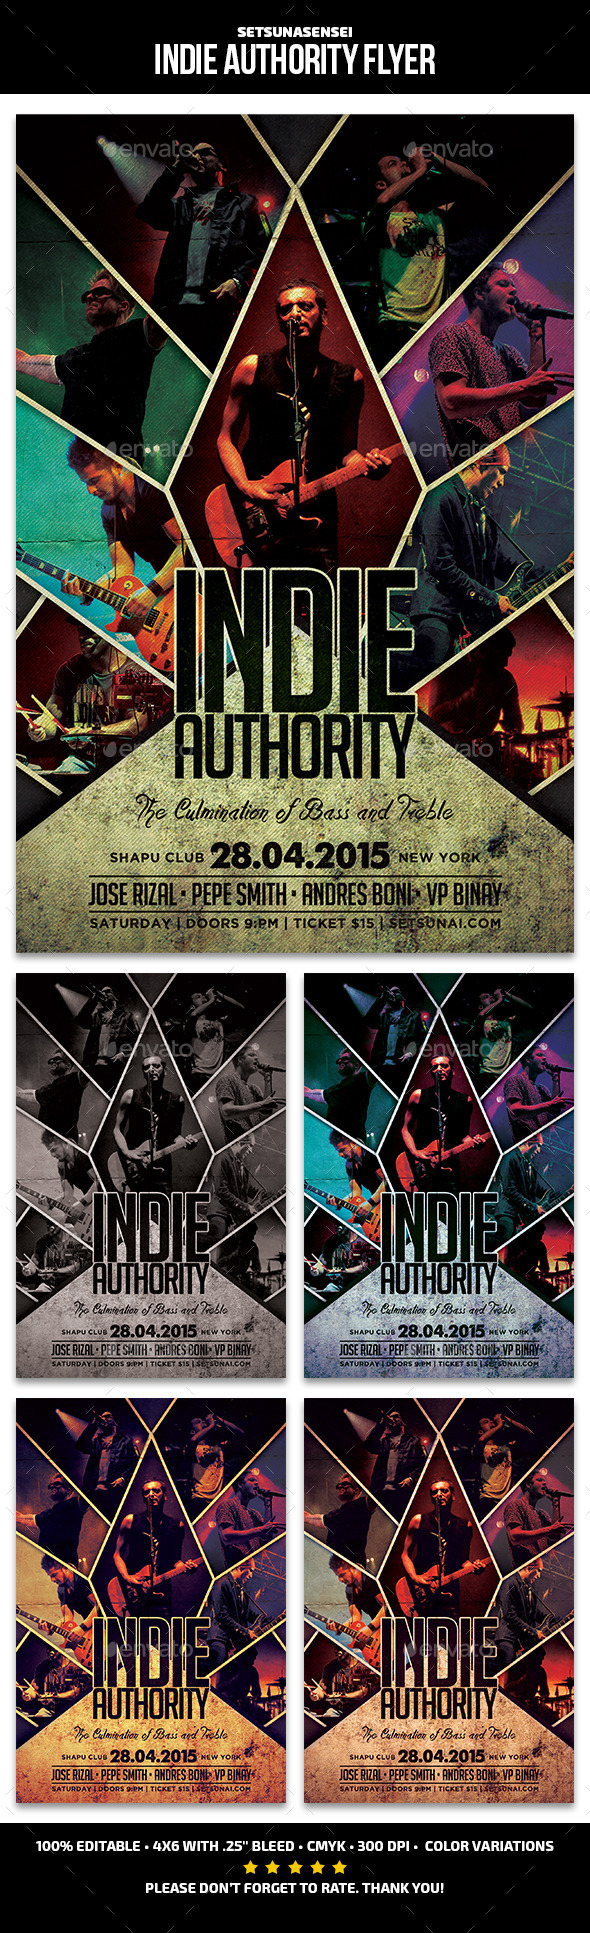 Indie Authority Flyer